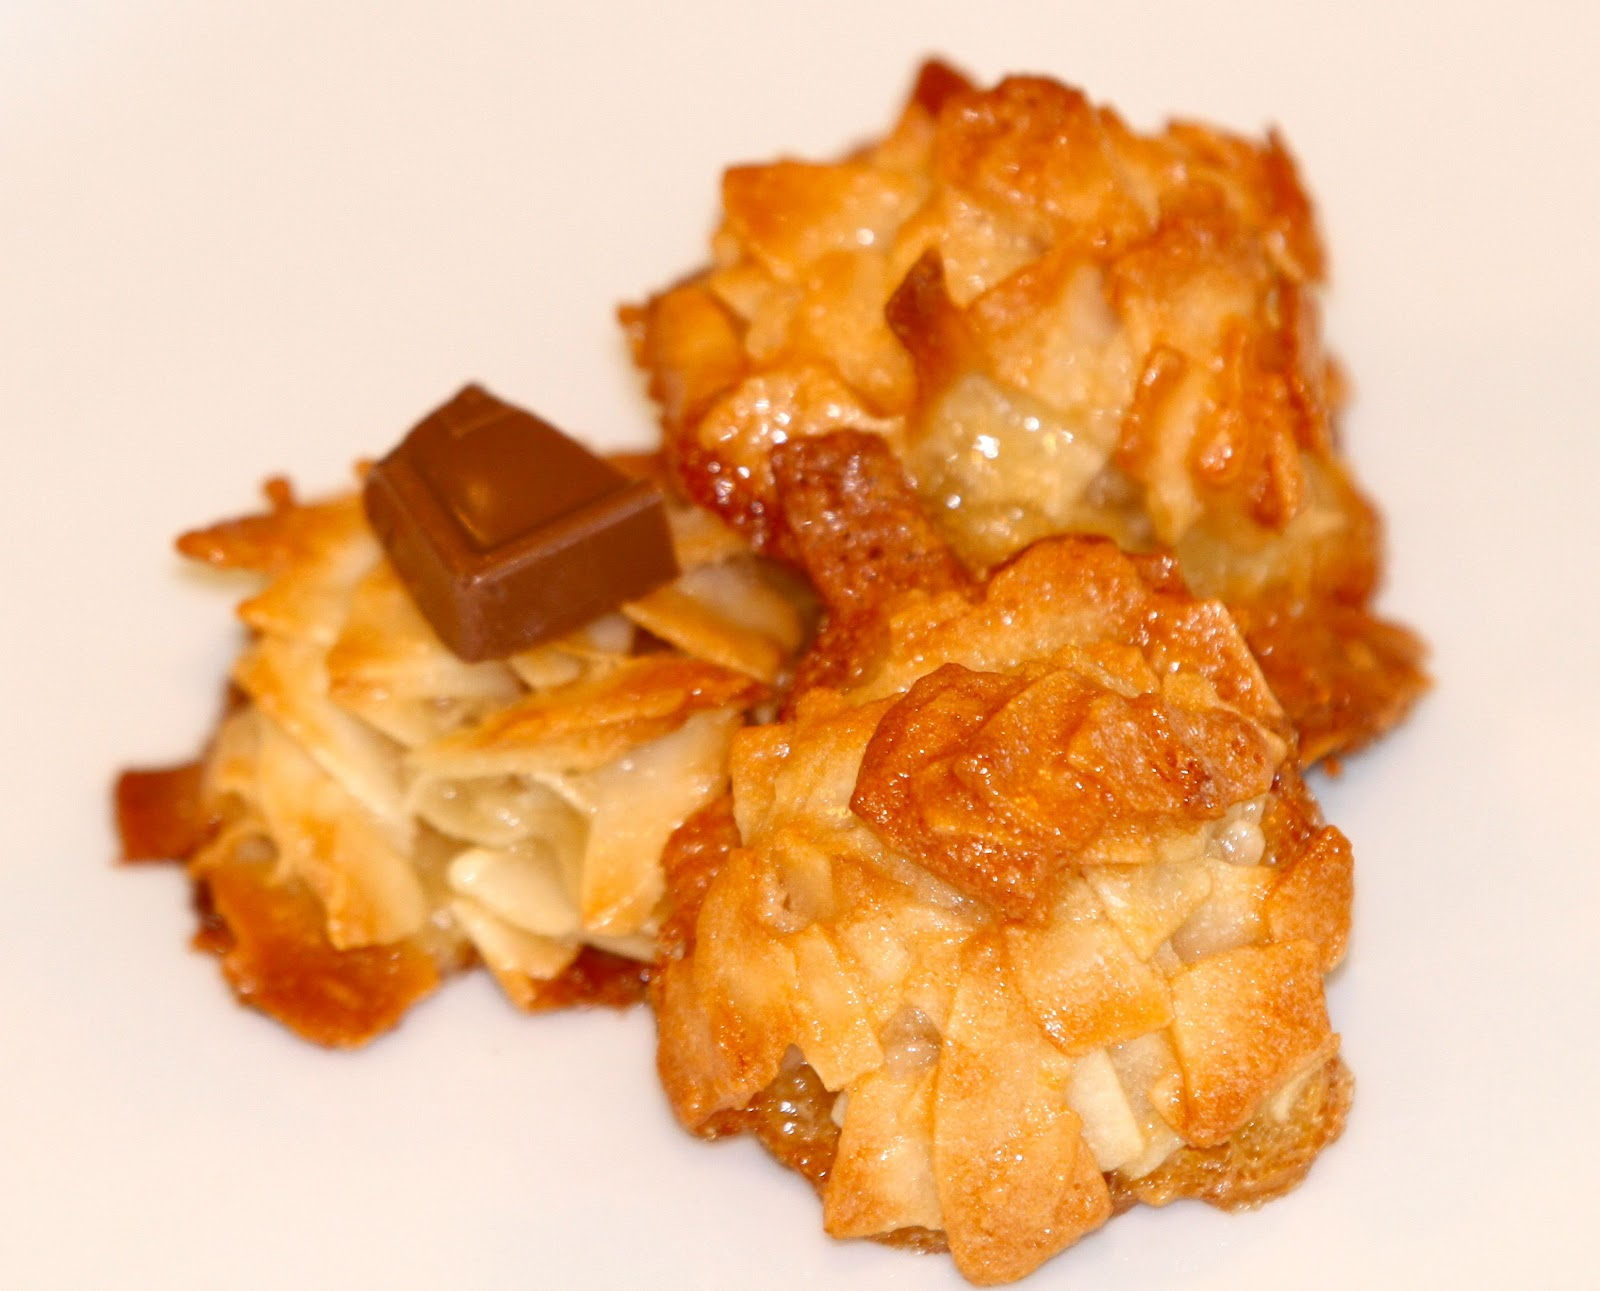 The Food Natwork: Cuckoo for Coconut Macaroons